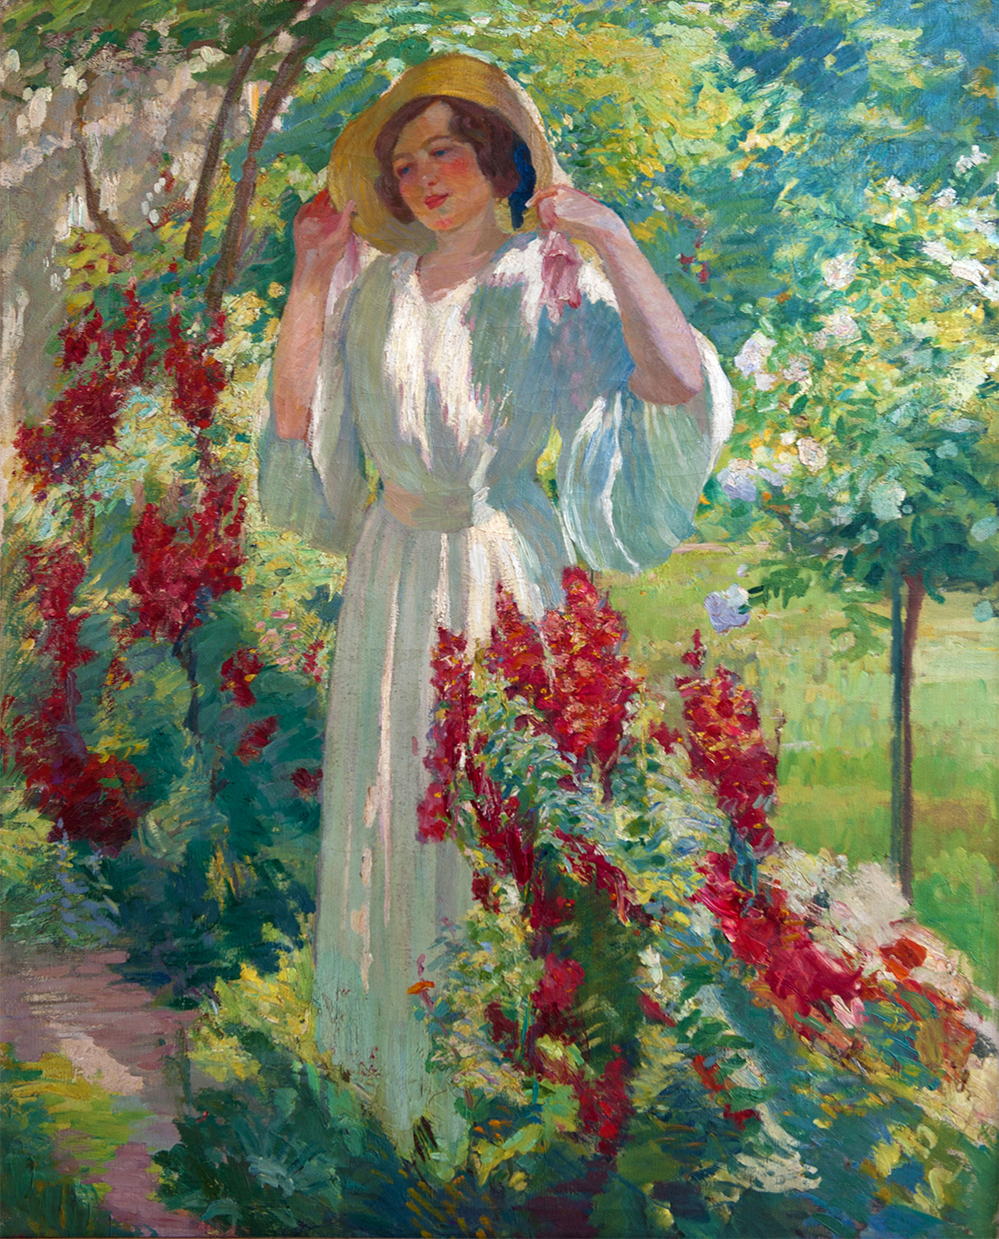 Portrait of a woman standing in a straw hat in a lush garden.